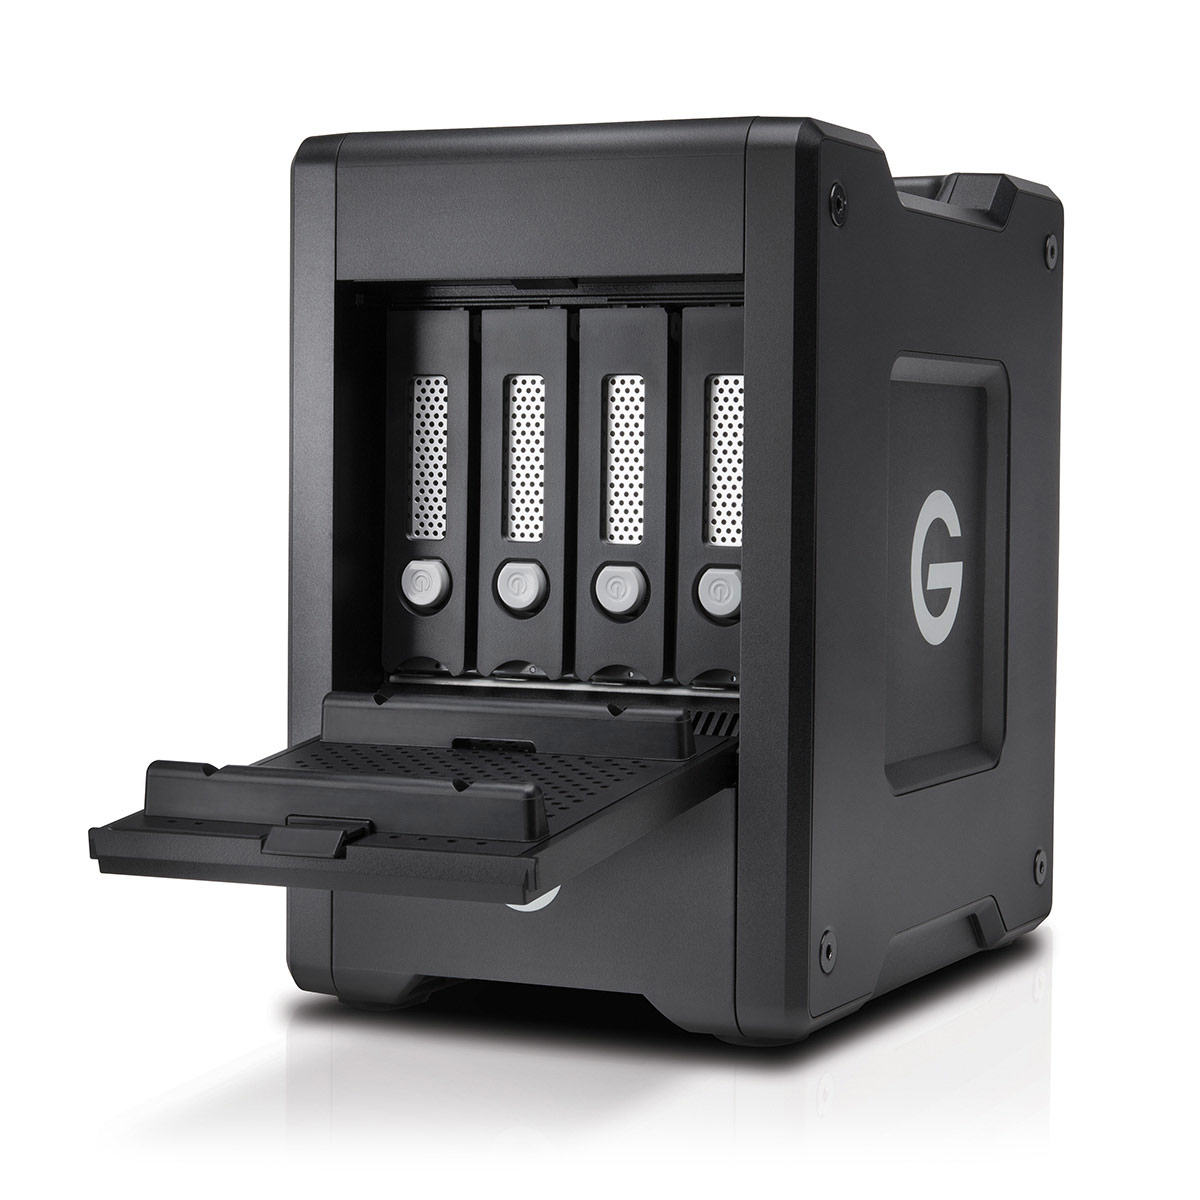 G-Technology G-SPEED Shuttle SSD 8TB Thunderbolt3 RAID Drive